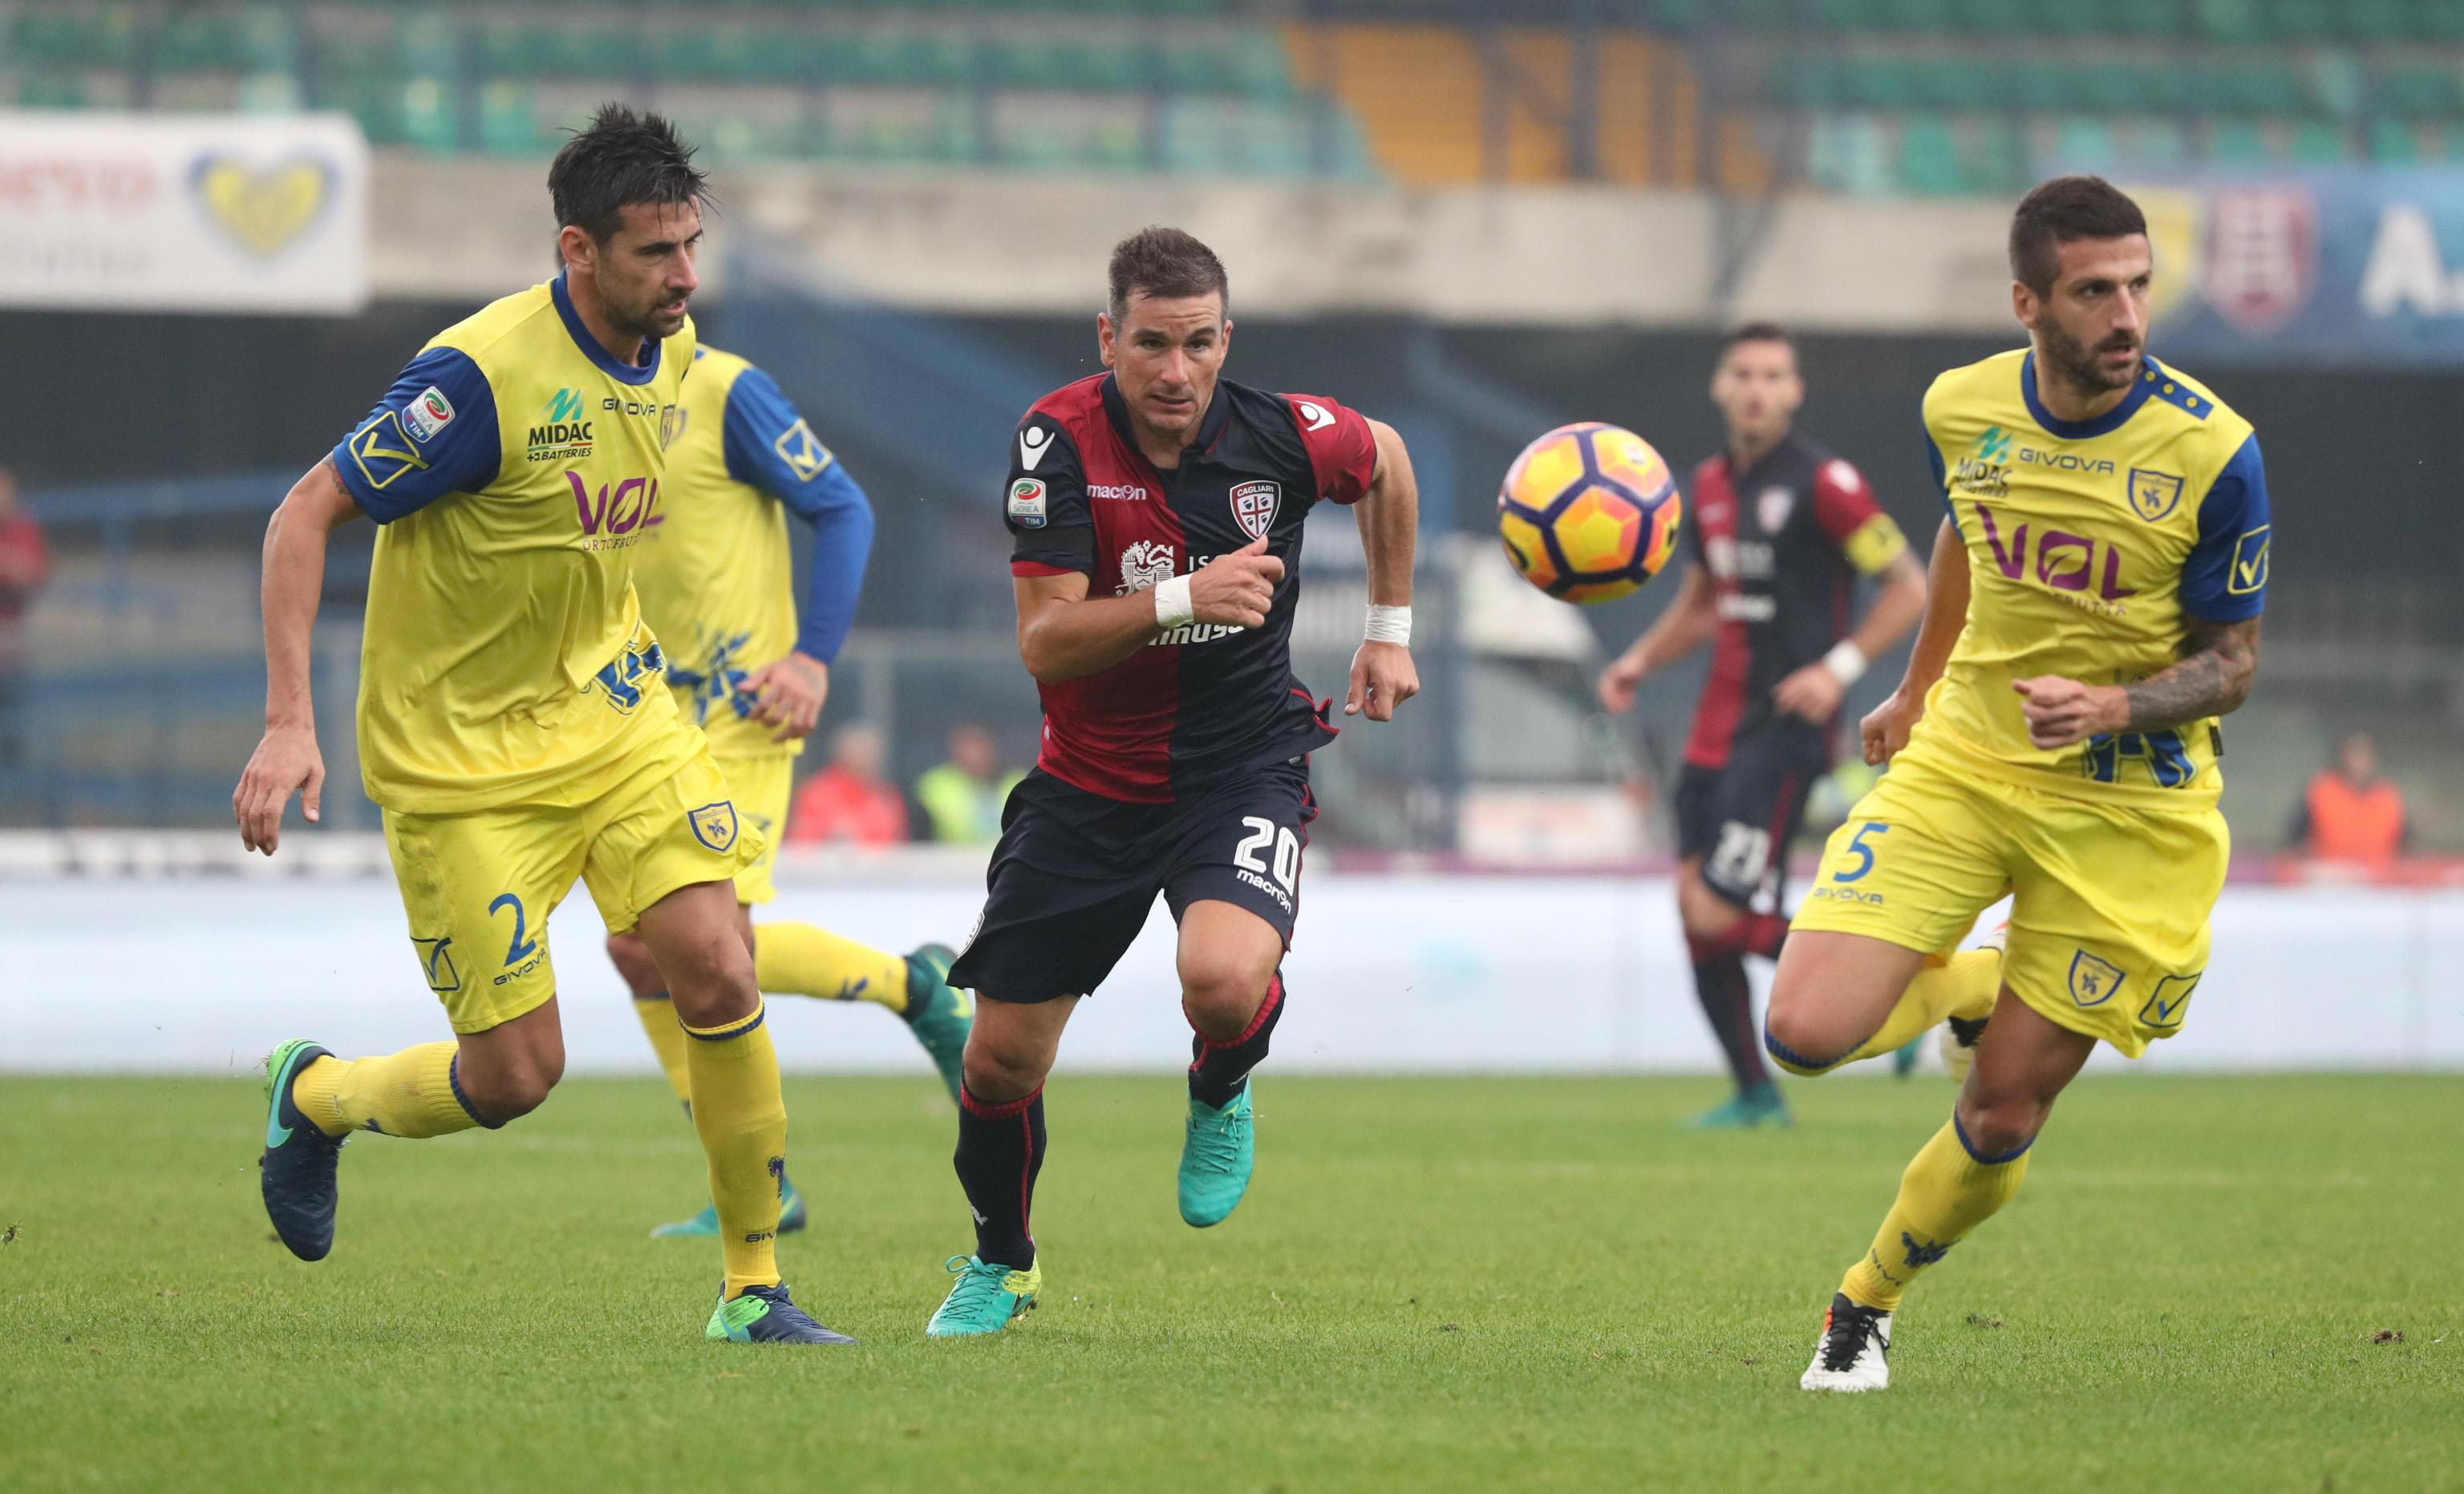 chievo cagliari - photo #16